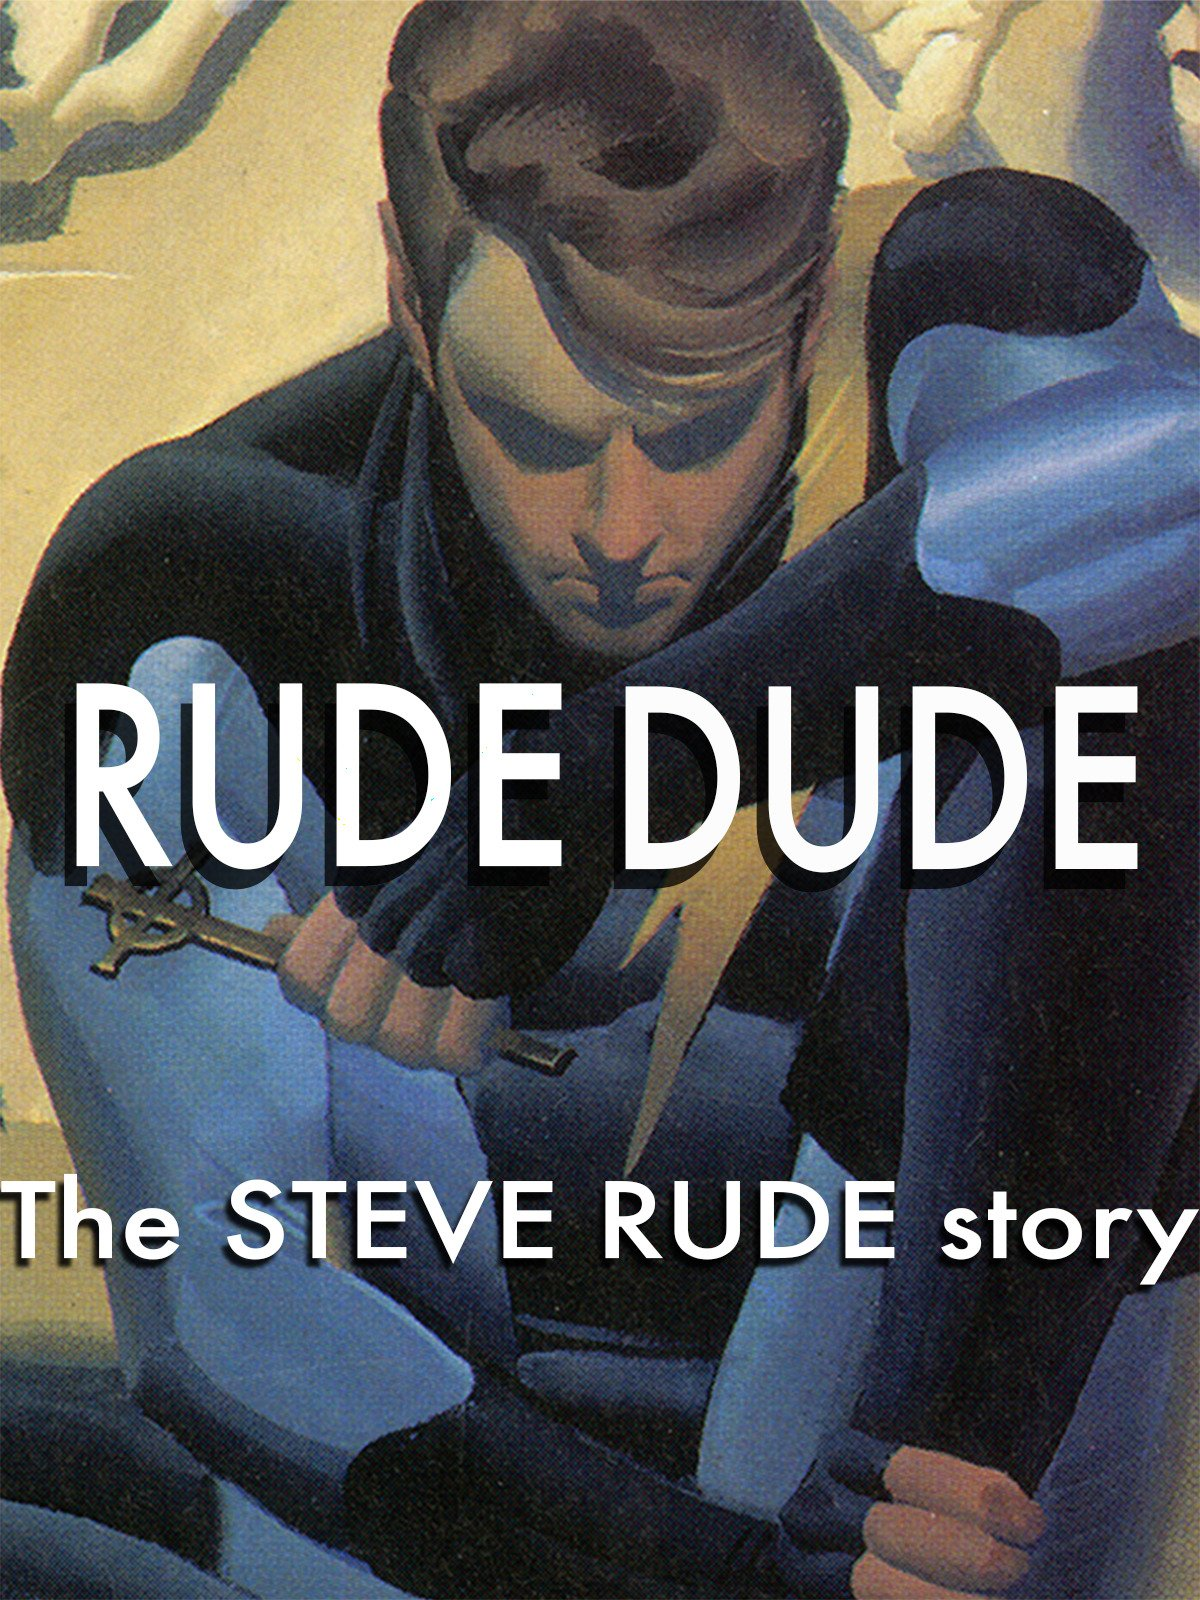 Rude Dude: The Steve Rude Story